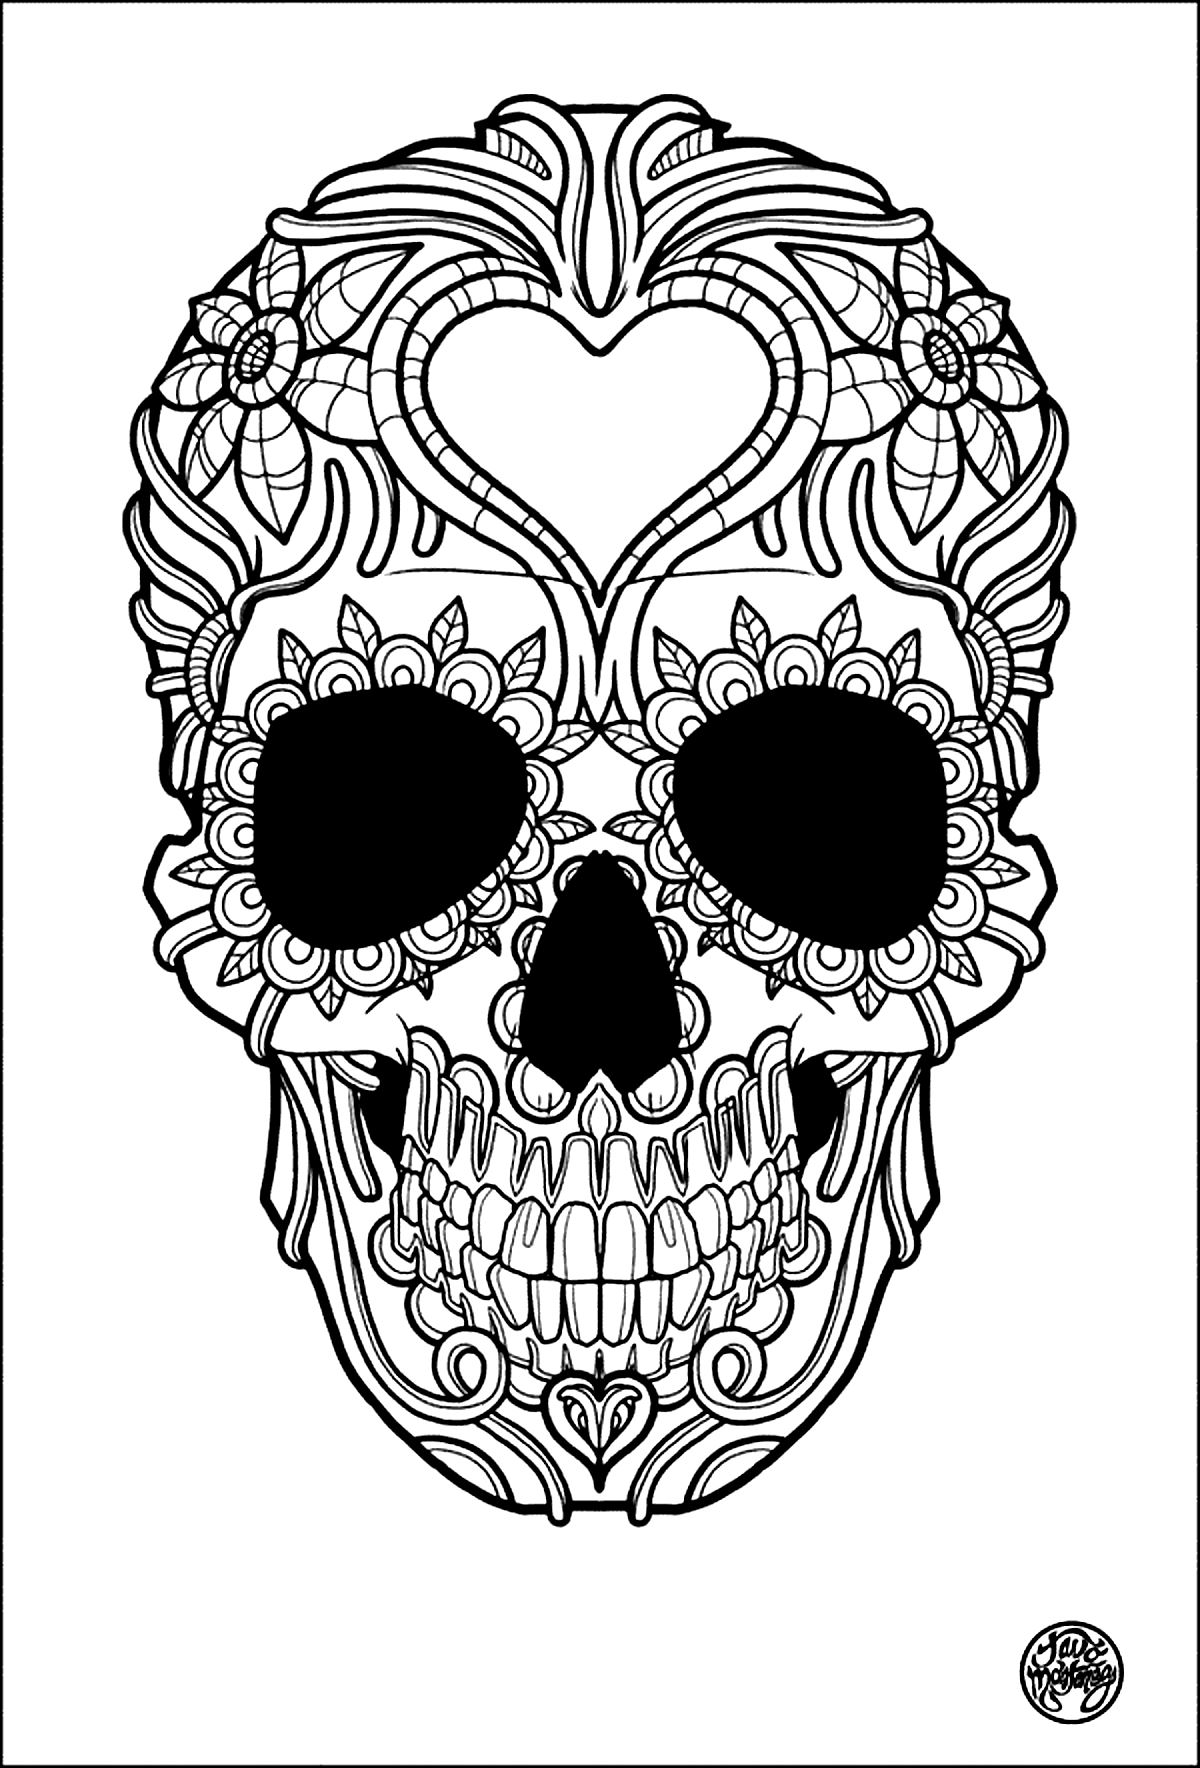 Tattoos Coloring pages for adults coloringadult